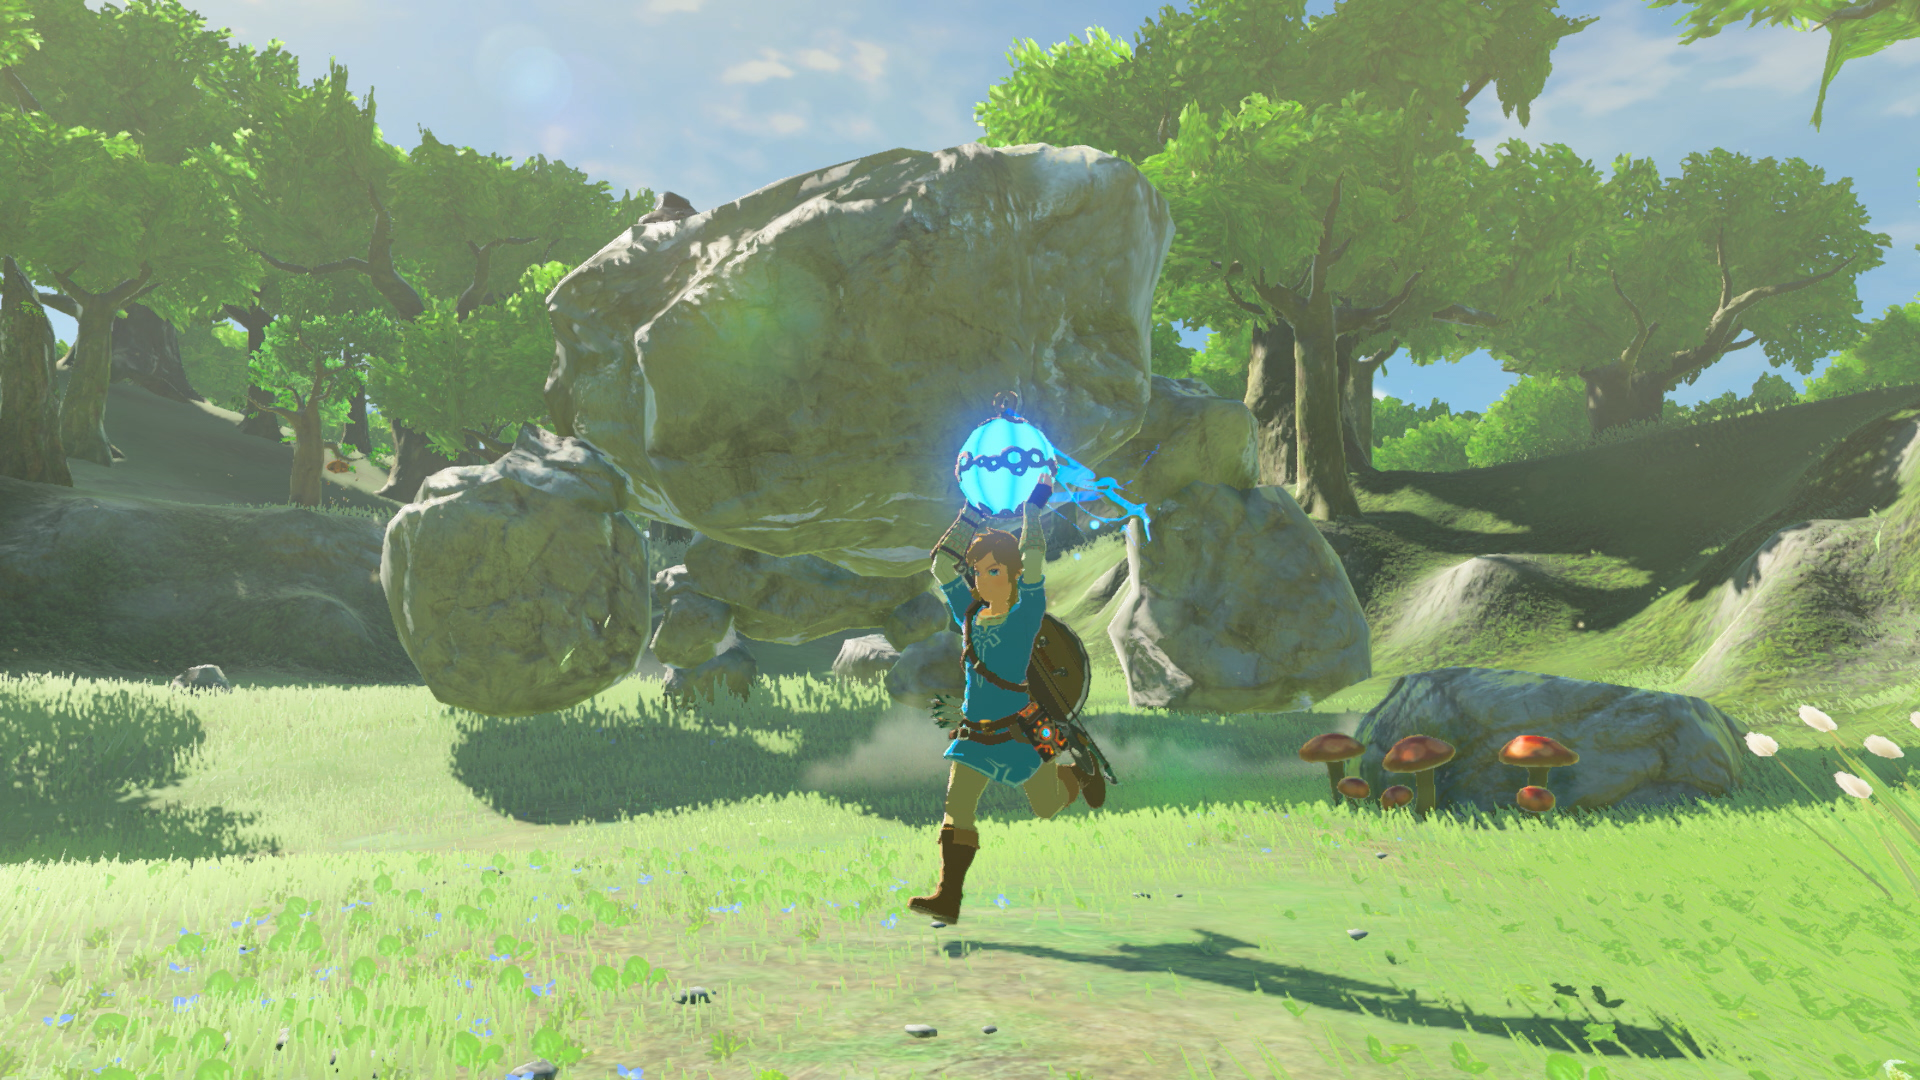 The Legend of Zelda: Breath of the Wild Review - The